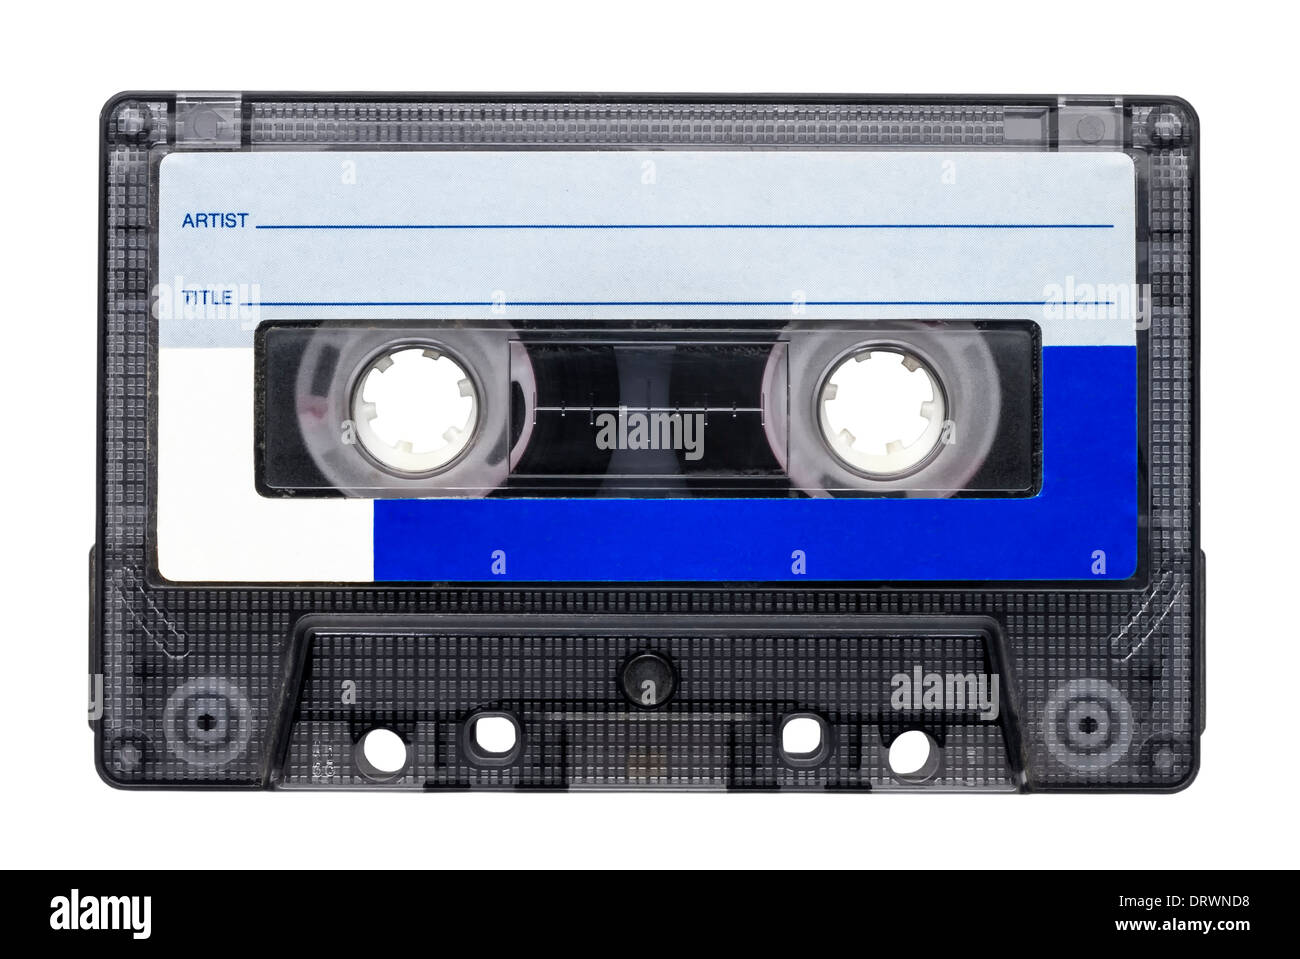 Magnetic tape cassette for audio music recording isolated over white background. - Stock Image